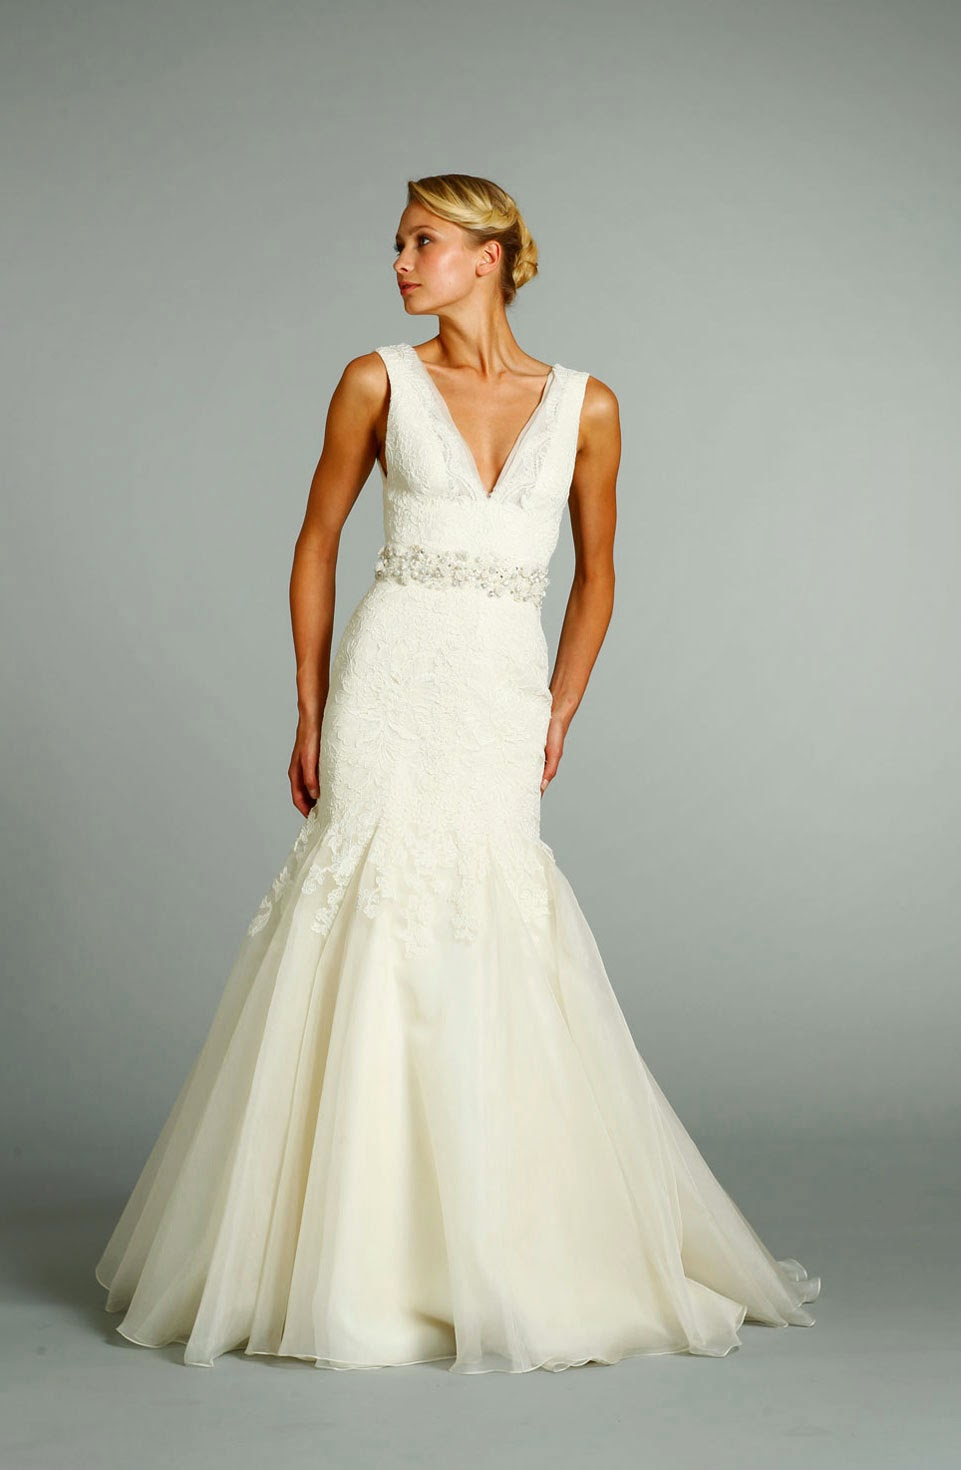 Cheap simple elegant wedding dresses style design ideas for Cheap elegant wedding decorations